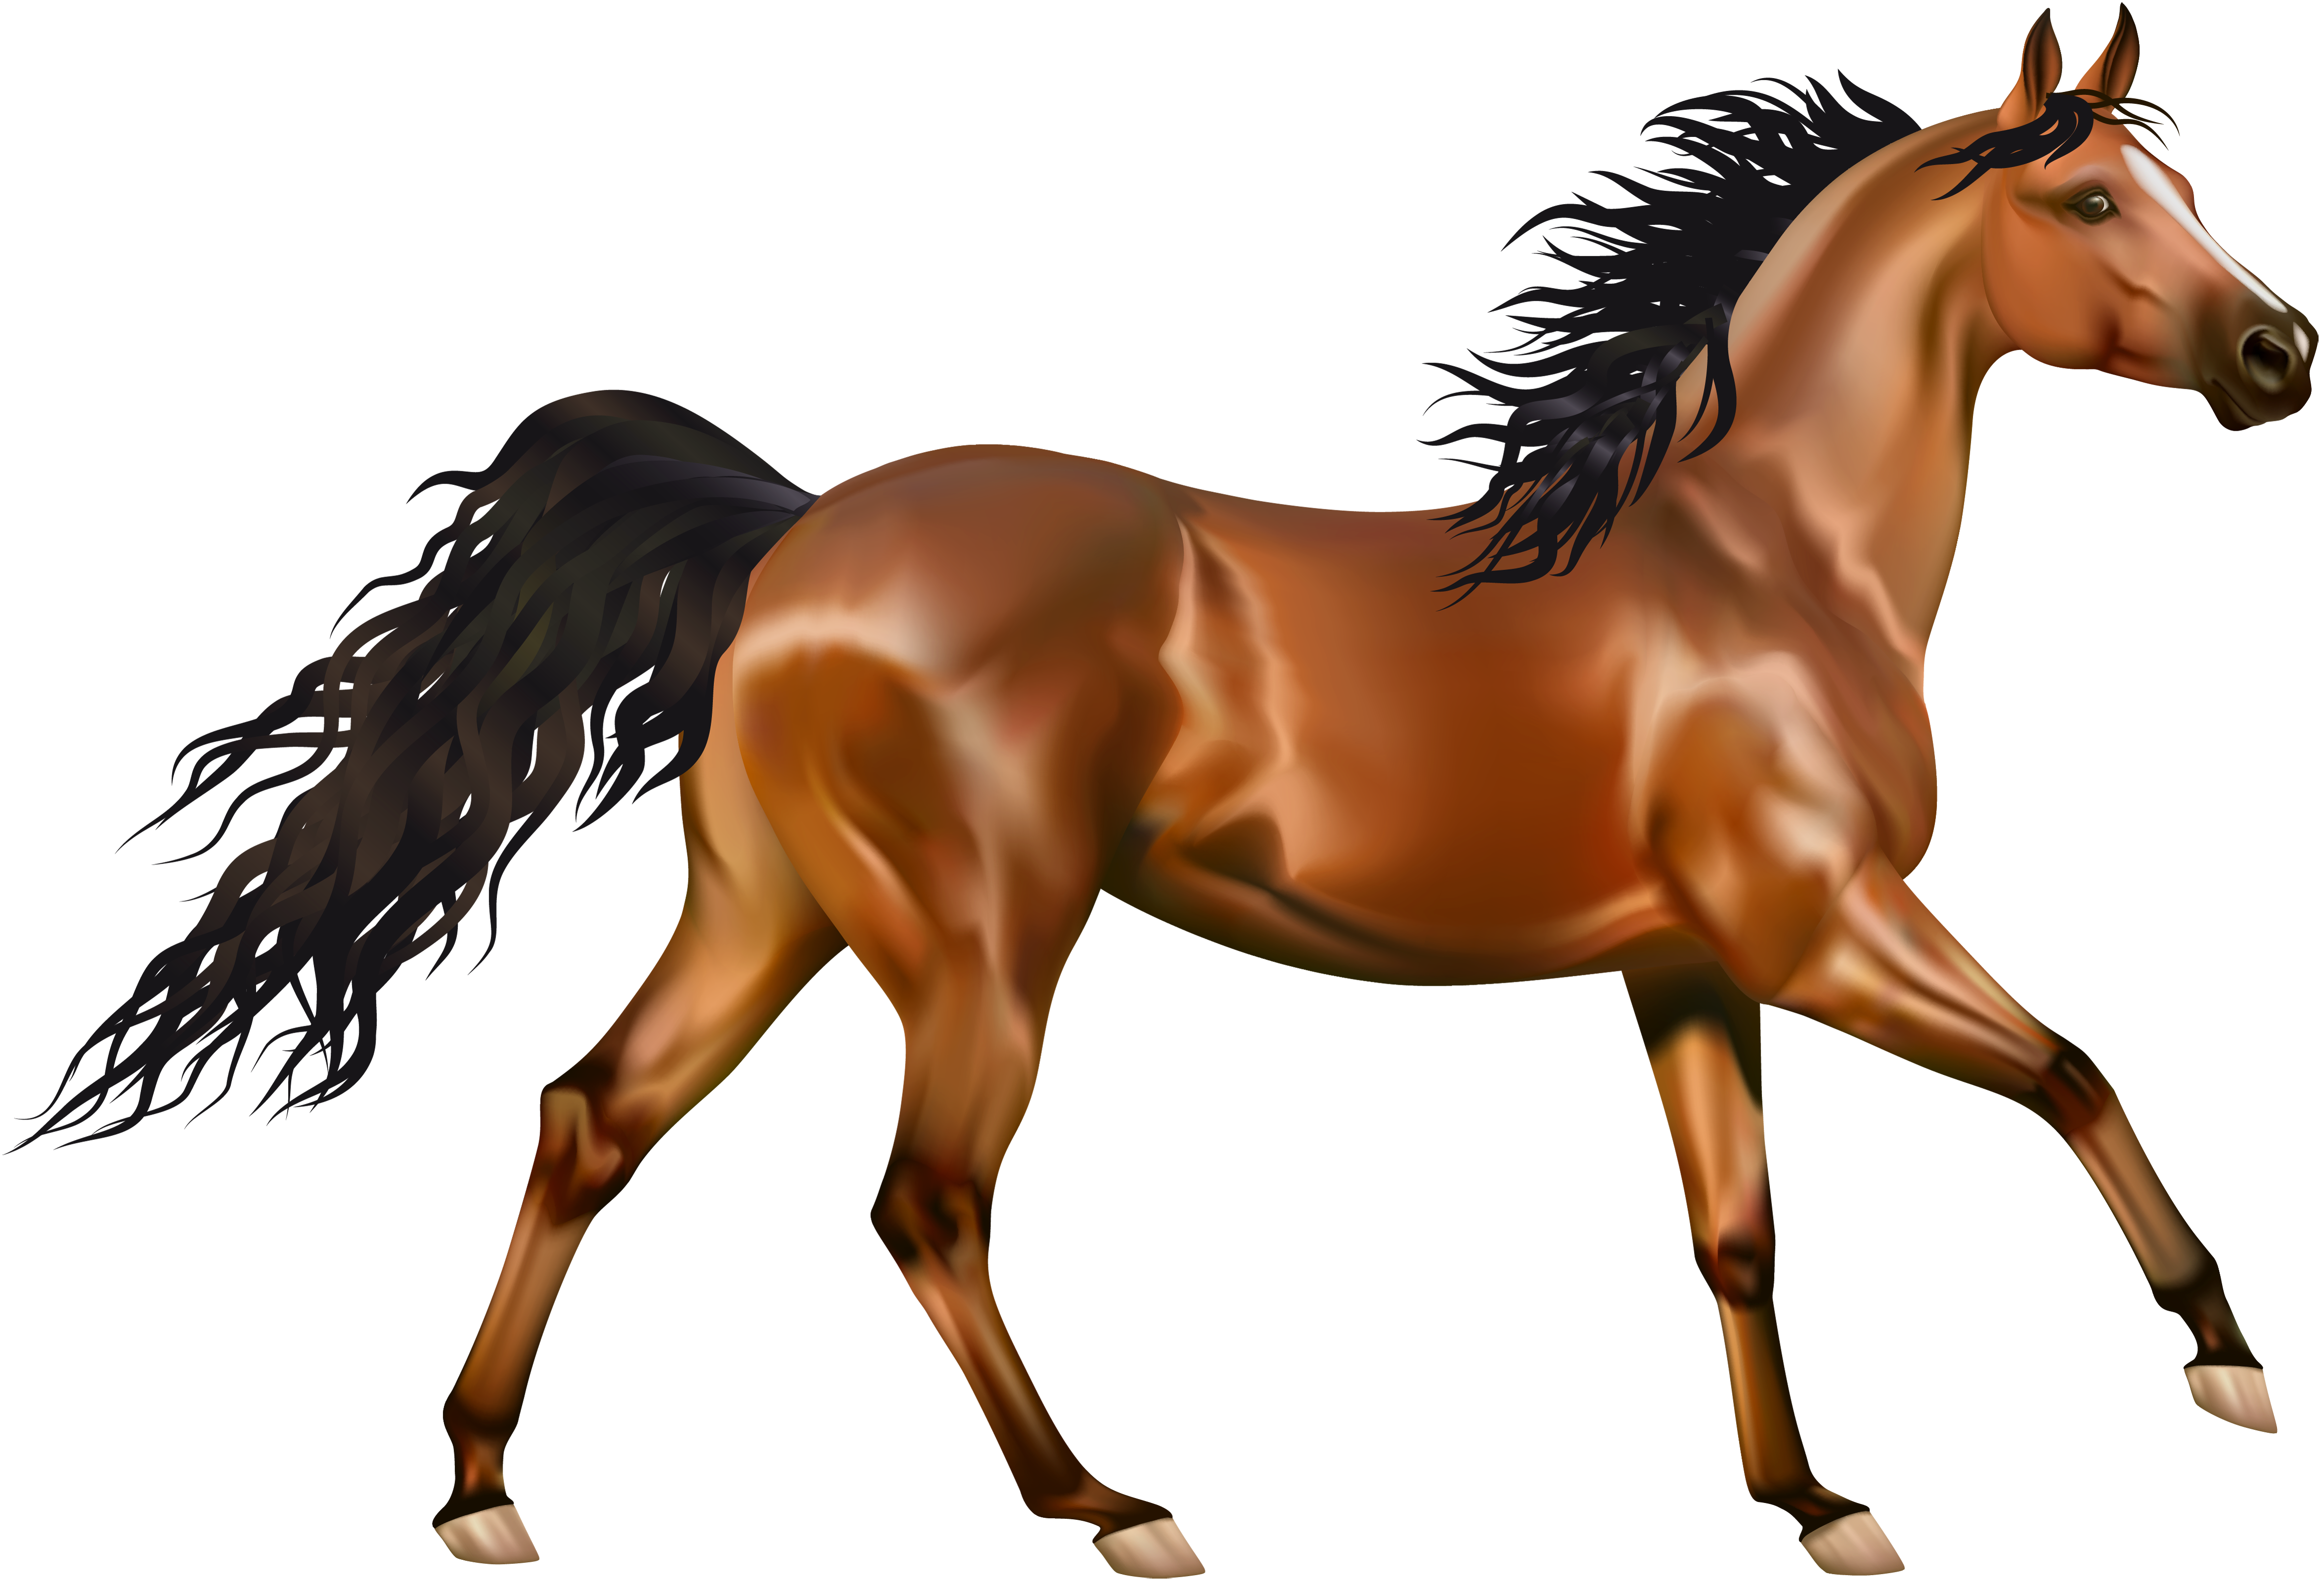 Transparent horses thoroughbred